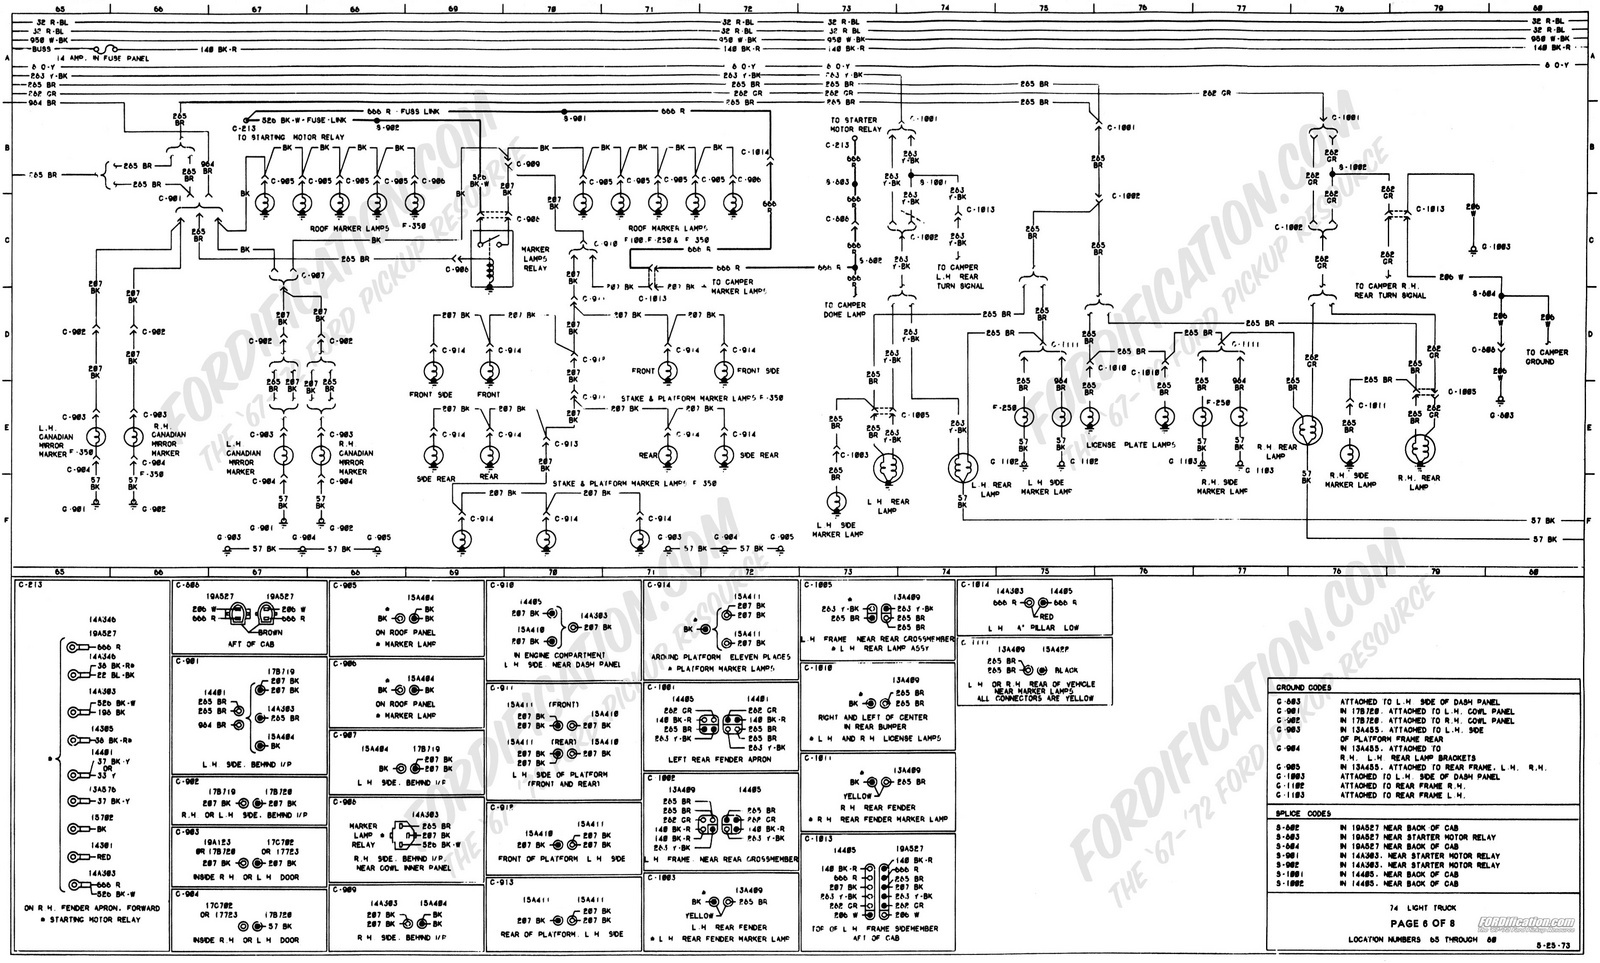 2014 Ford F550 Trailer Wiring Diagram | Ford F550 Wiring Schematic |  | Wiring Diagram